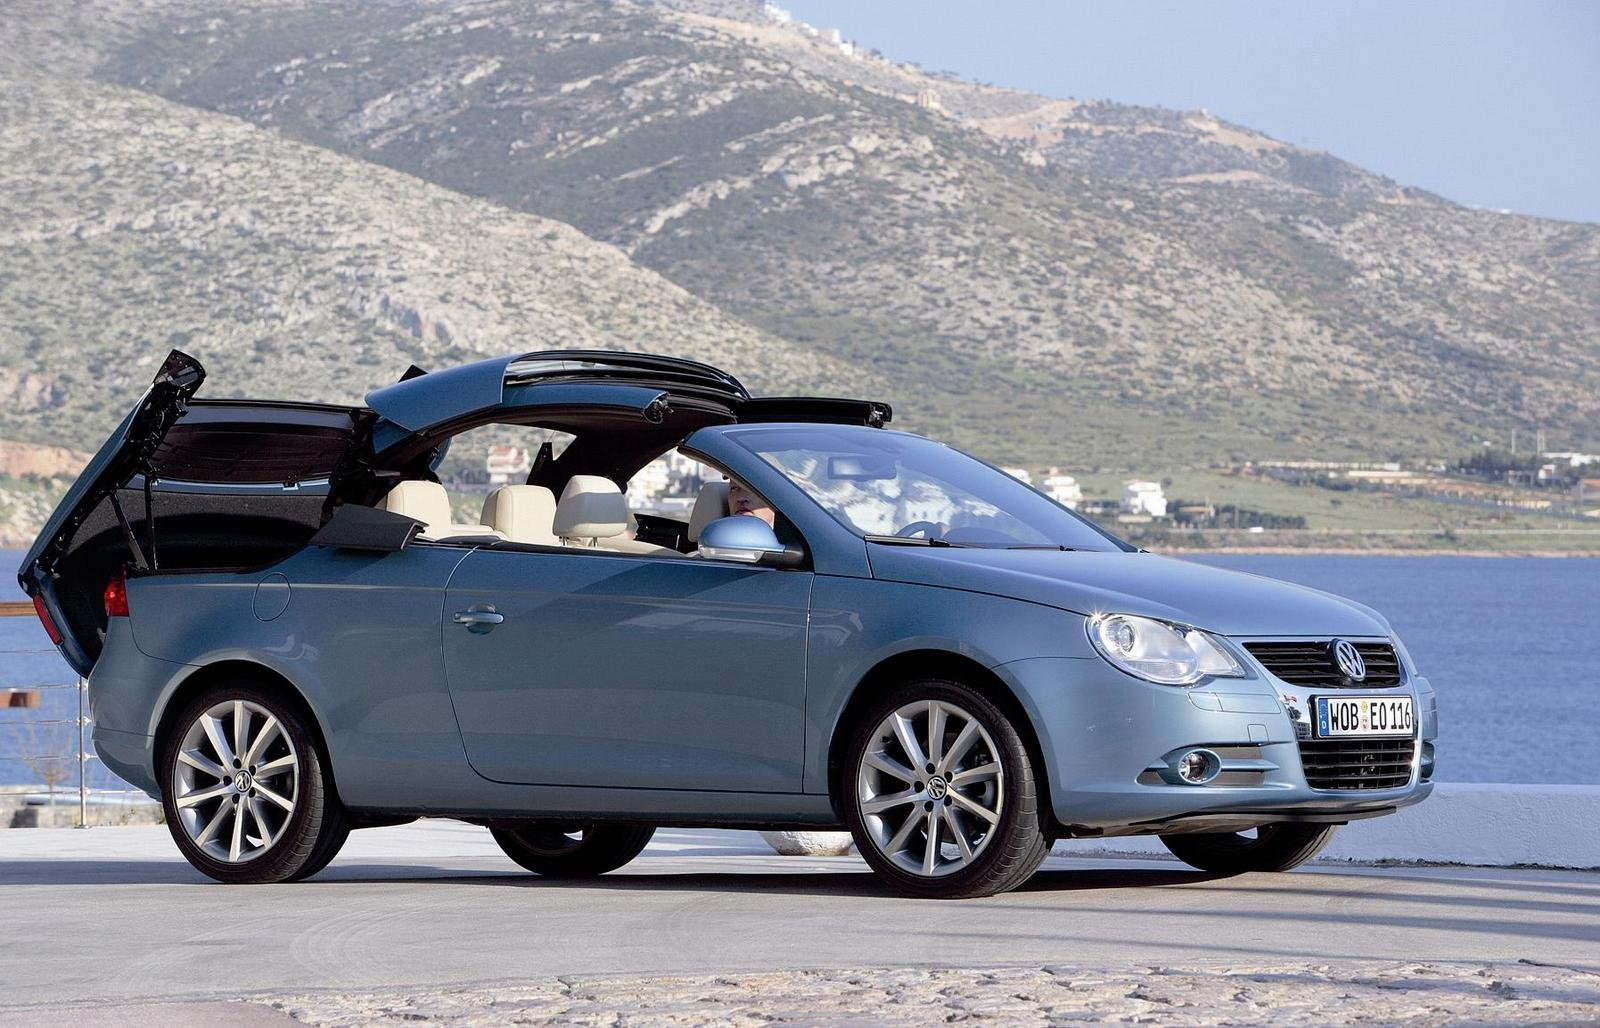 2006 volkswagen eos picture 82740 car review top speed. Black Bedroom Furniture Sets. Home Design Ideas